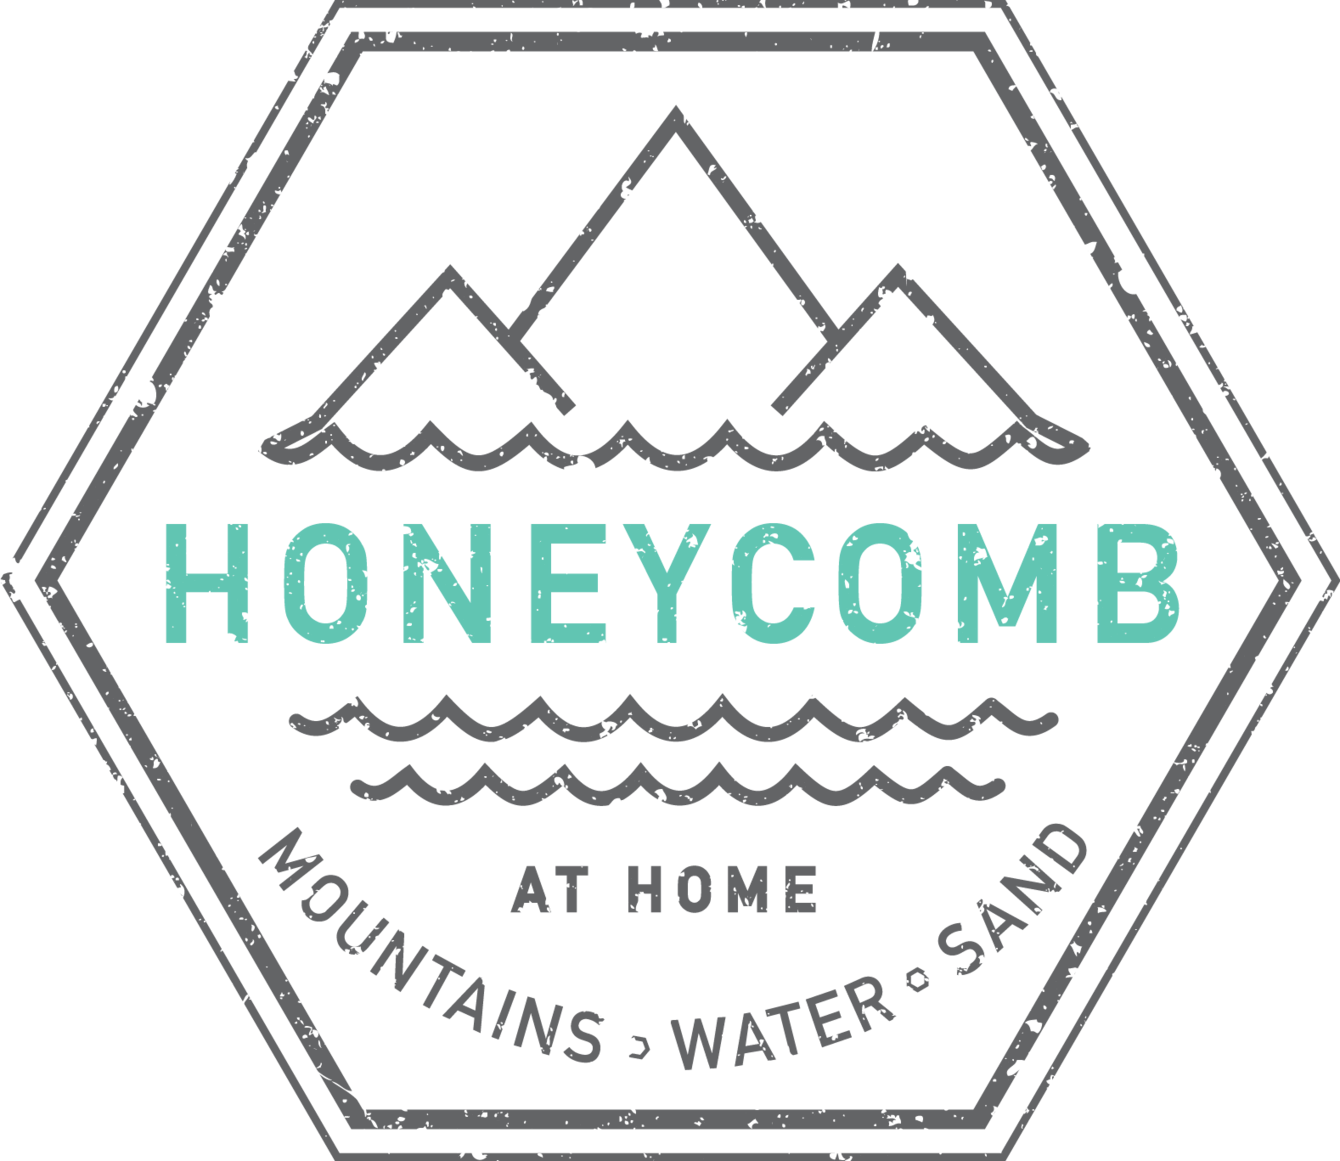 Honeycomb at Home